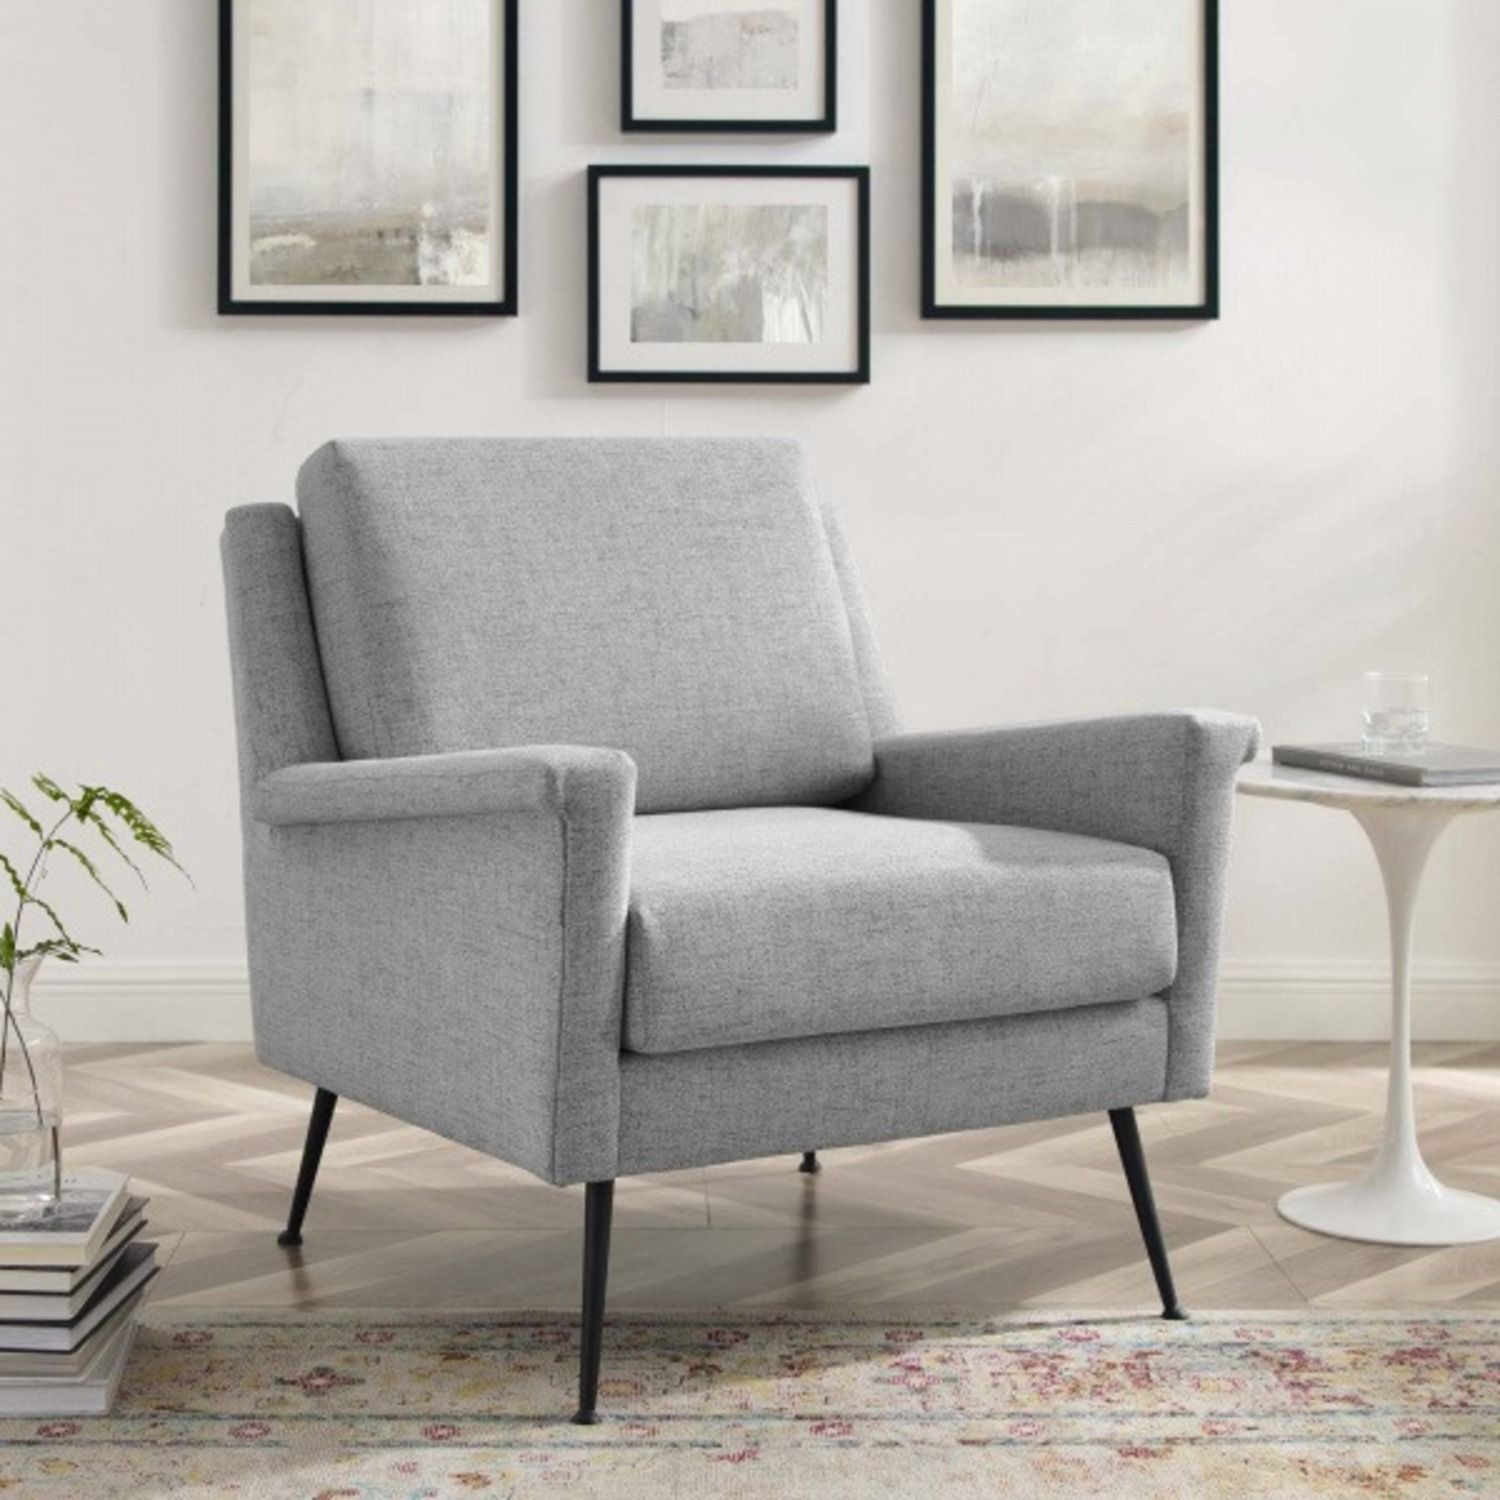 Modern Accent Armchair In Light Gray Fabric - image-7